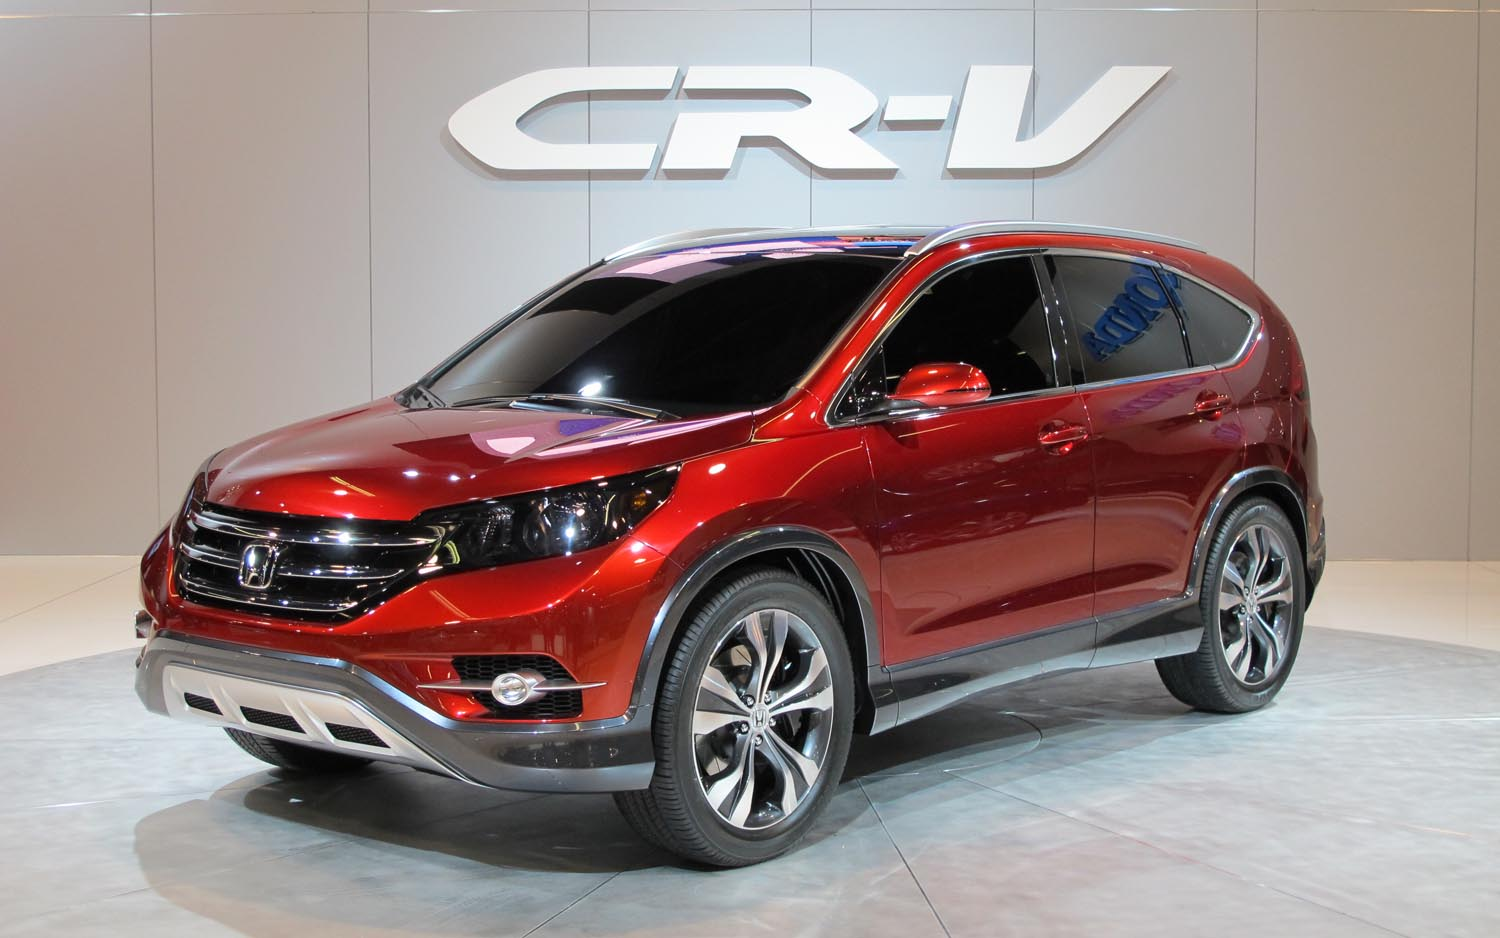 honda cr v concept comes to california gets new engine [ 1500 x 938 Pixel ]